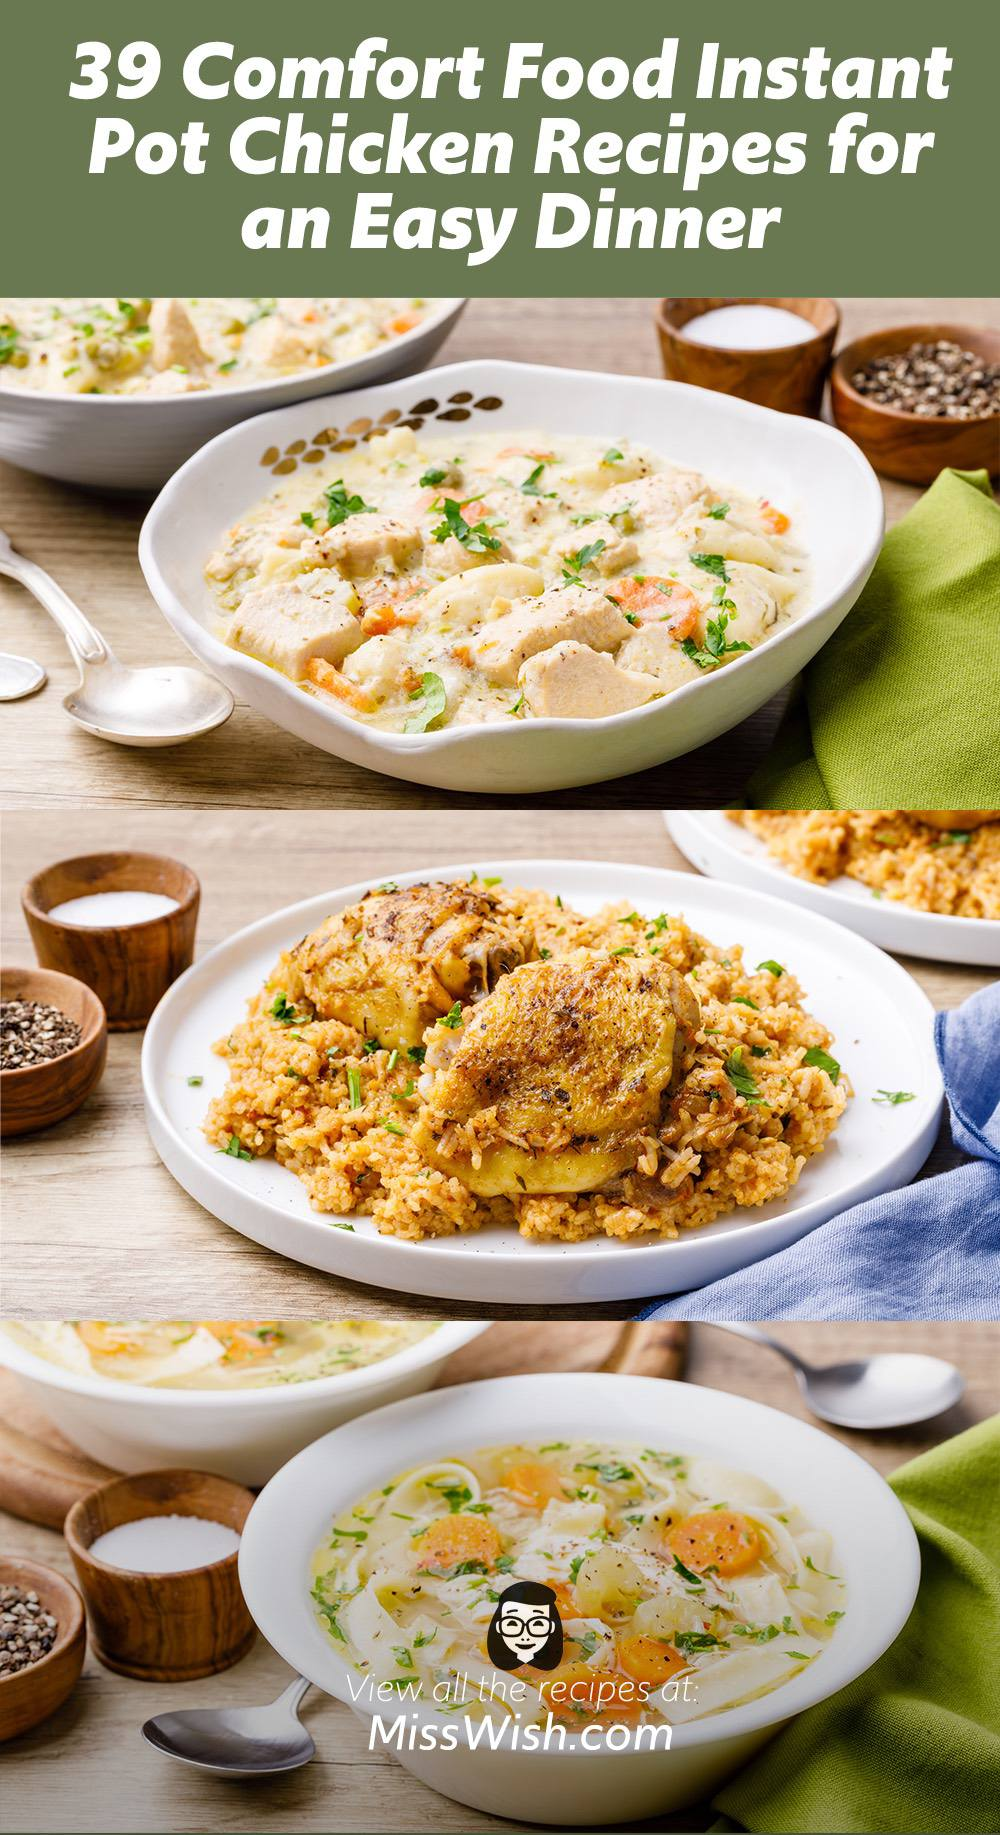 39 Comfort Food Instant Pot Chicken Recipes for an Easy Dinner